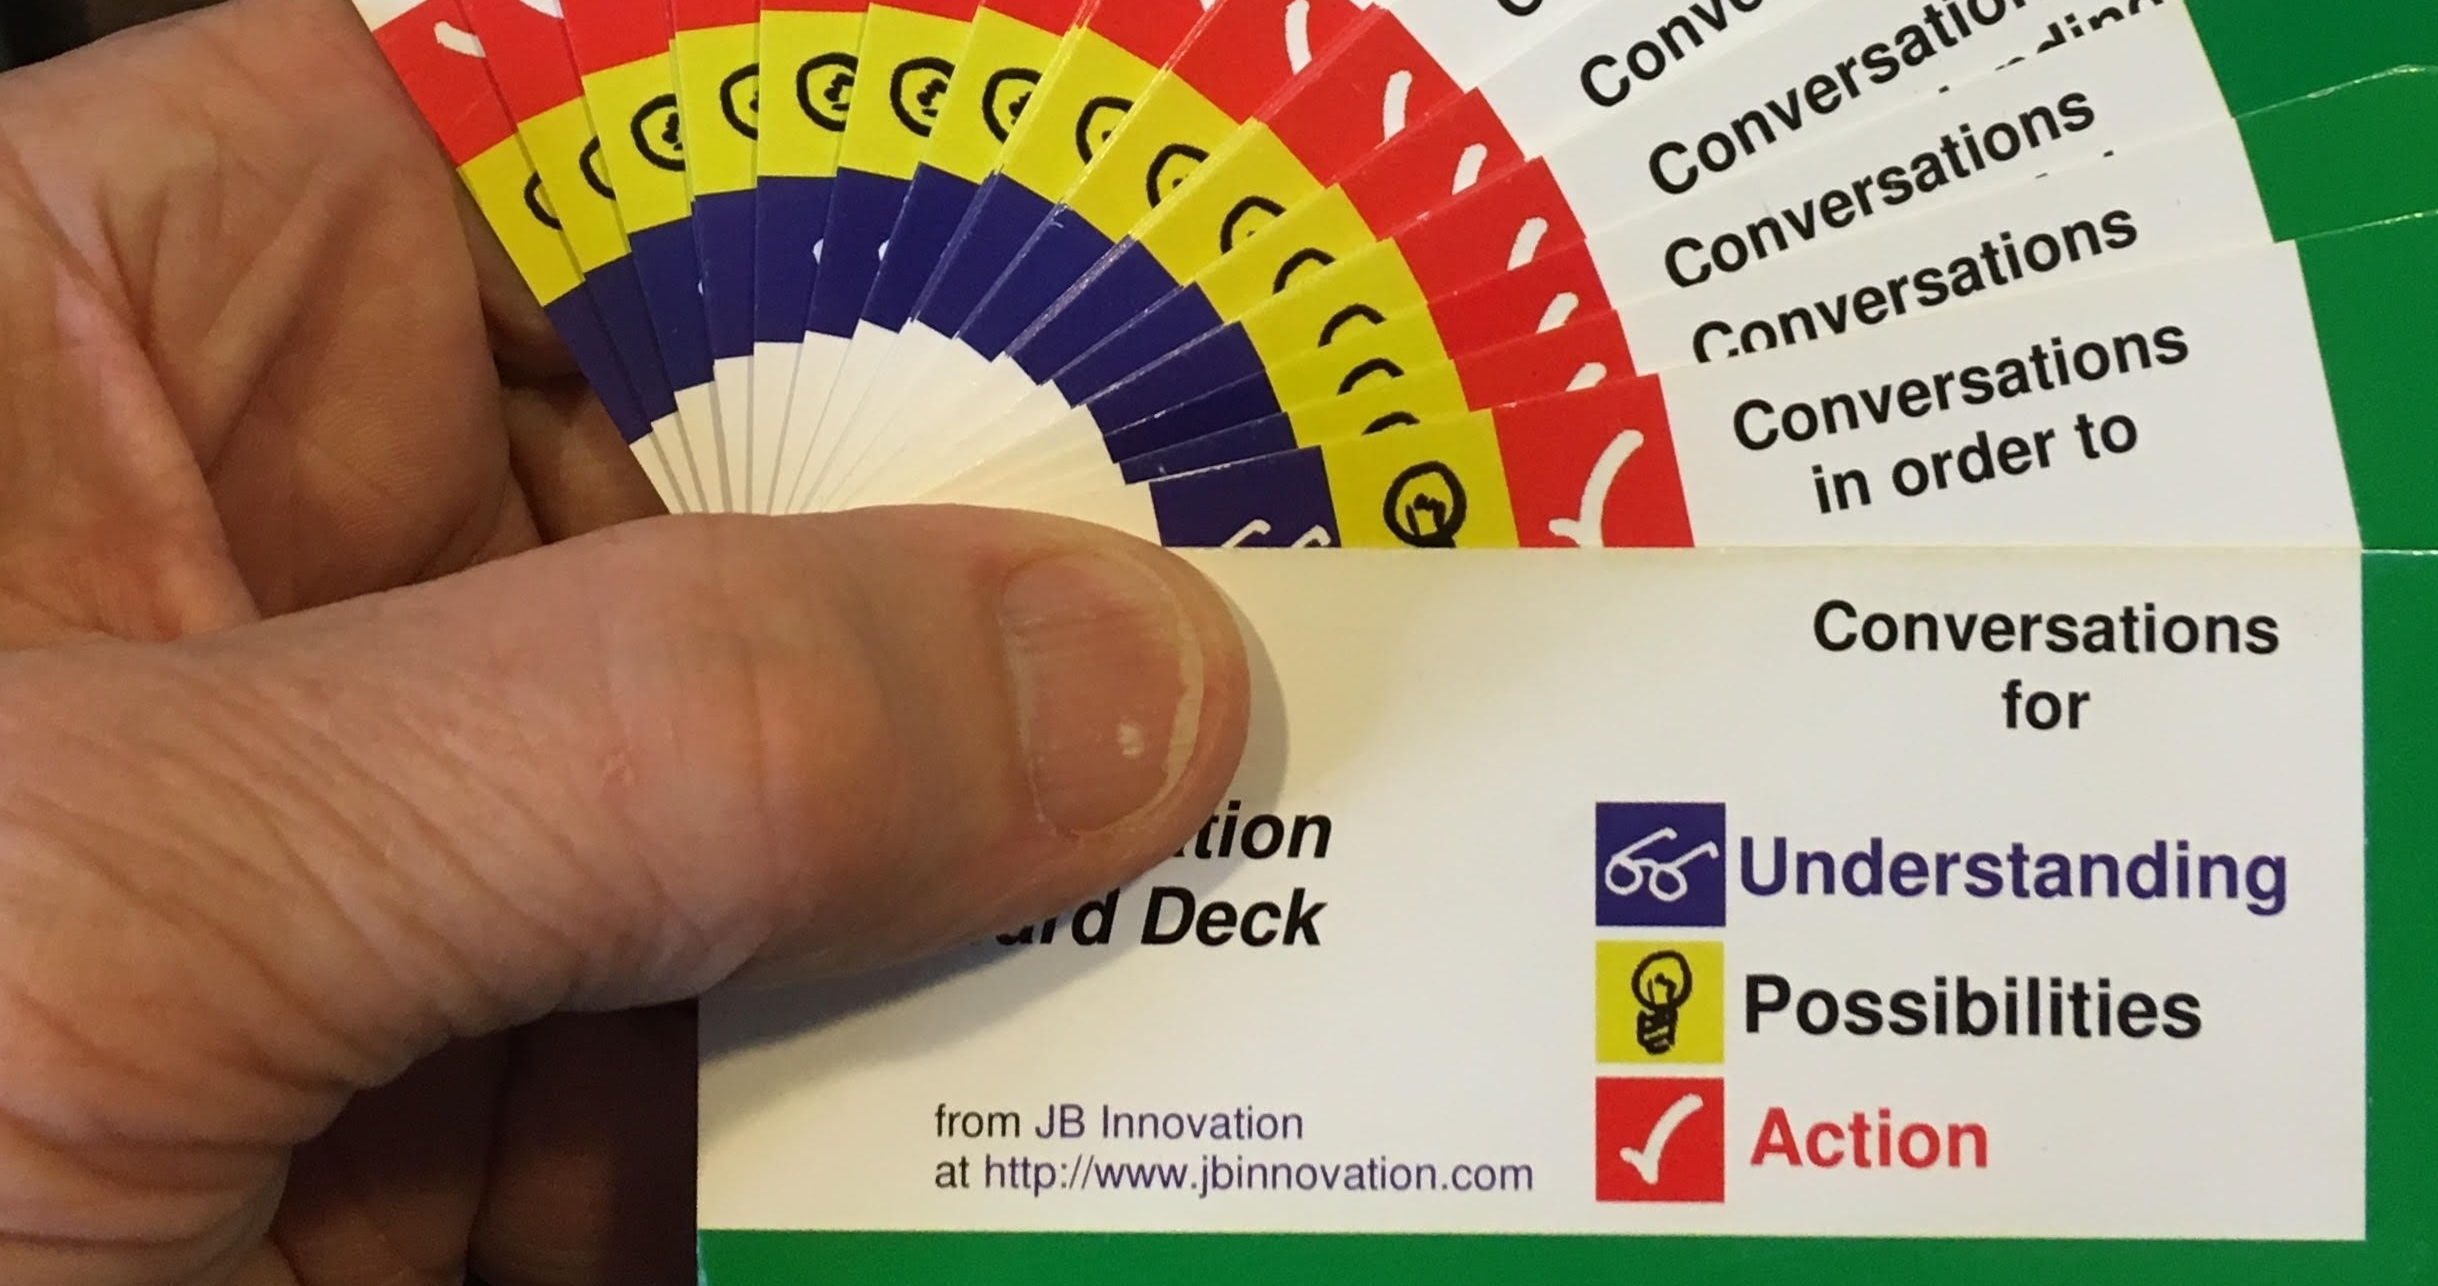 Innovation Tools - The Innovation Card Deck, MyMap, Personal Scorecard and other tools support individual and group innovation.